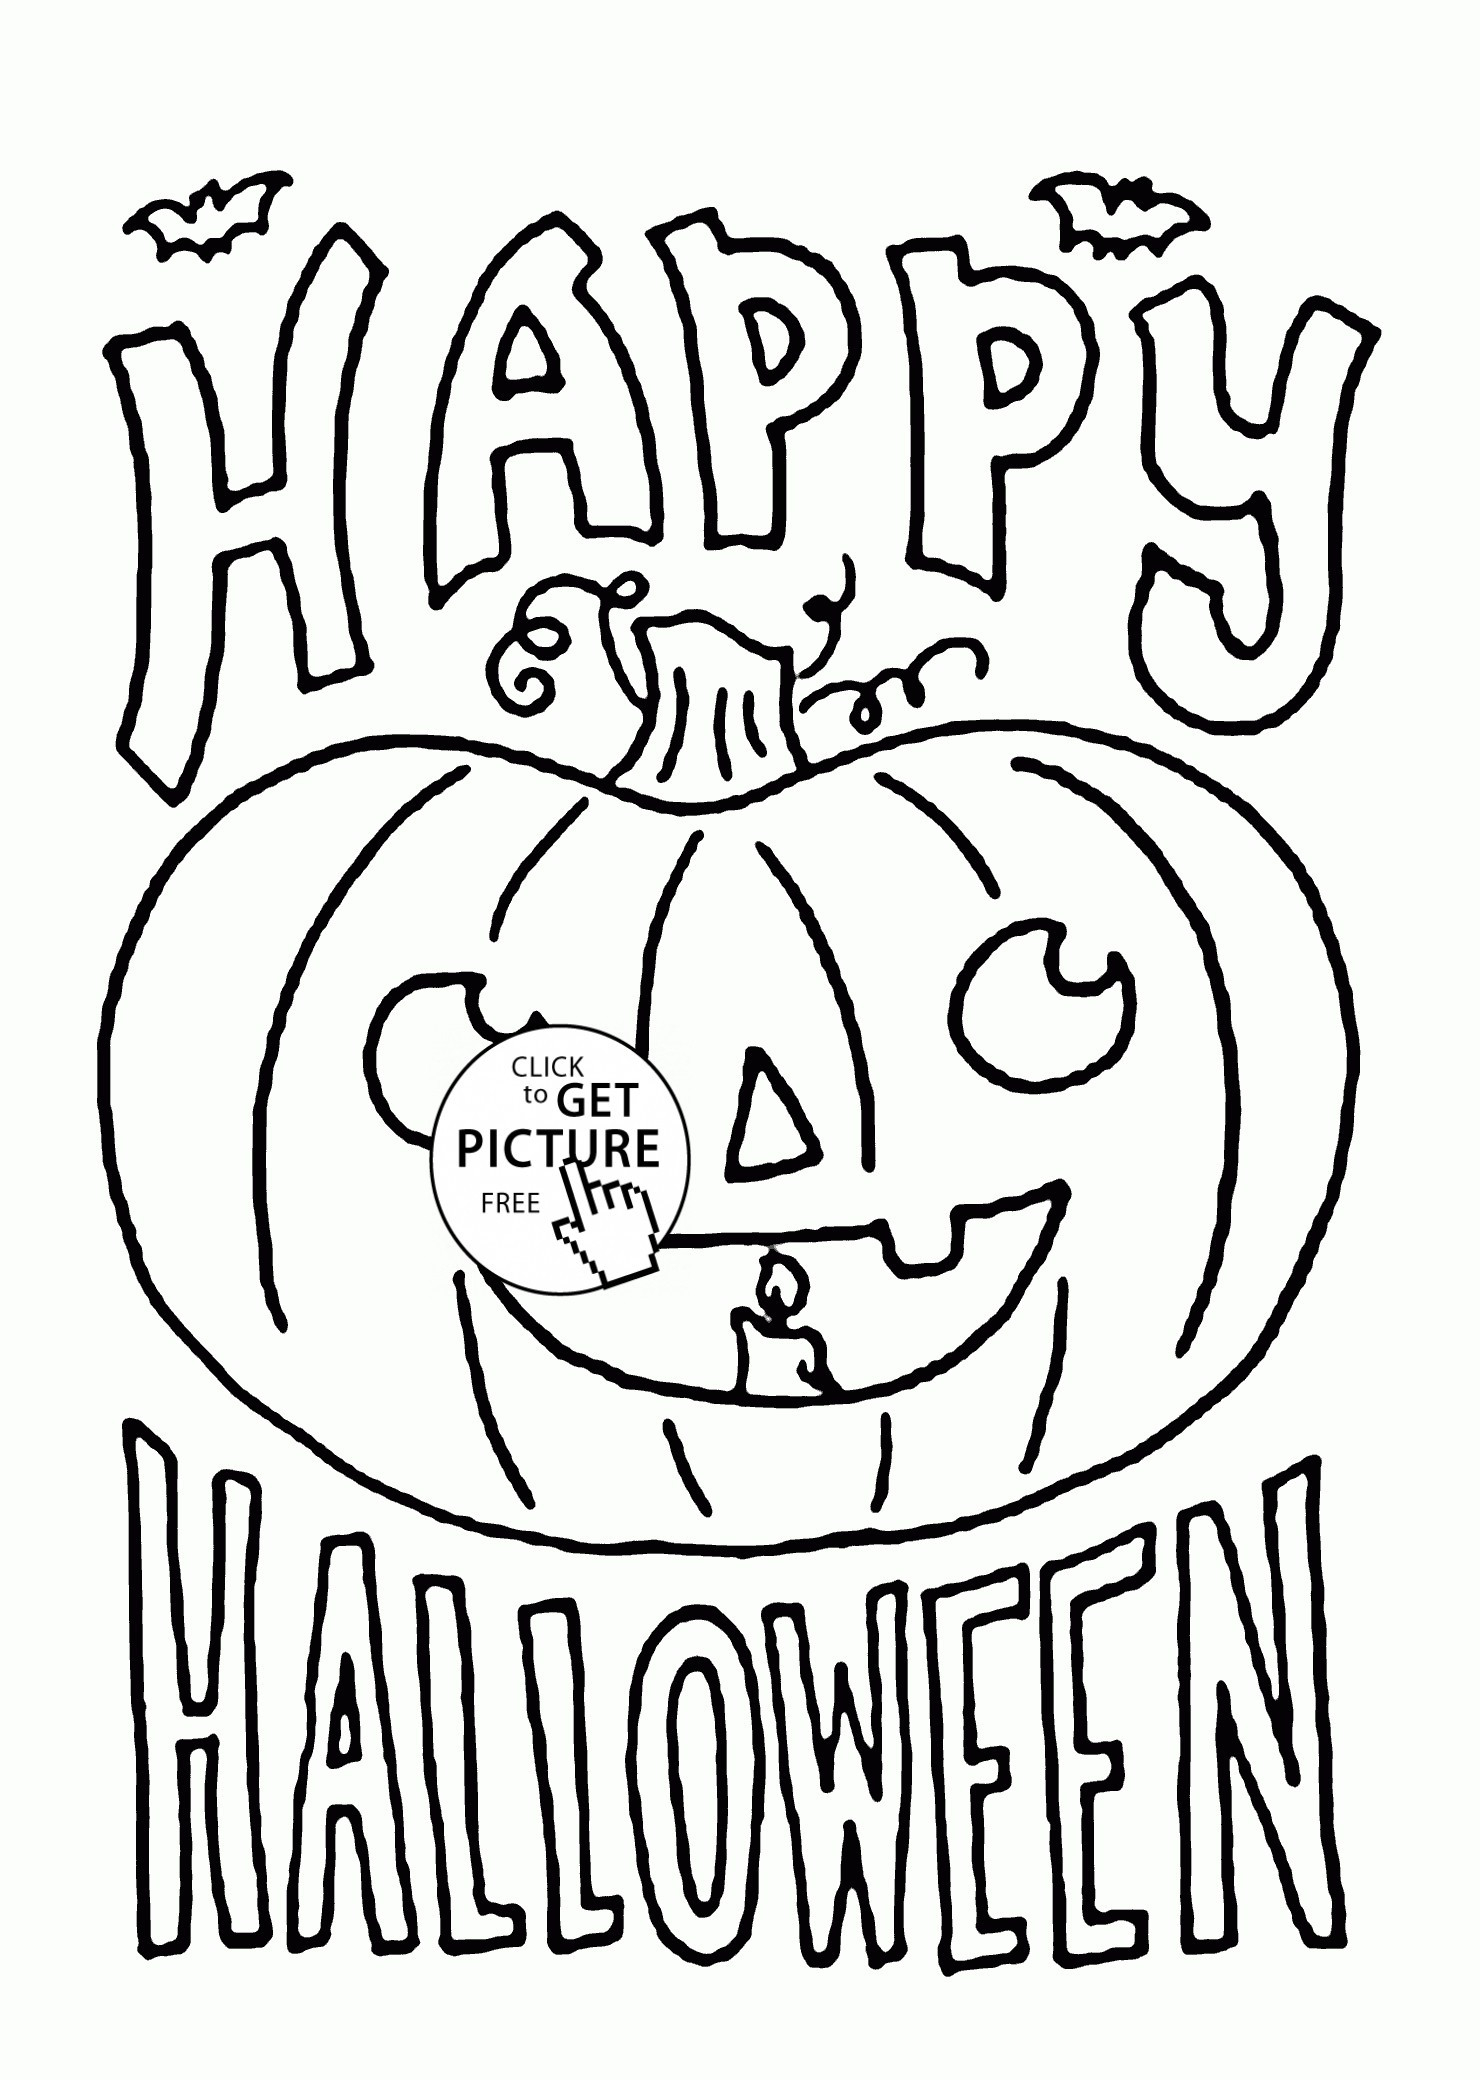 Free Printable Halloween Coloring Page Coloring Ideas Halloween Coloring Free Printables Printable Pages